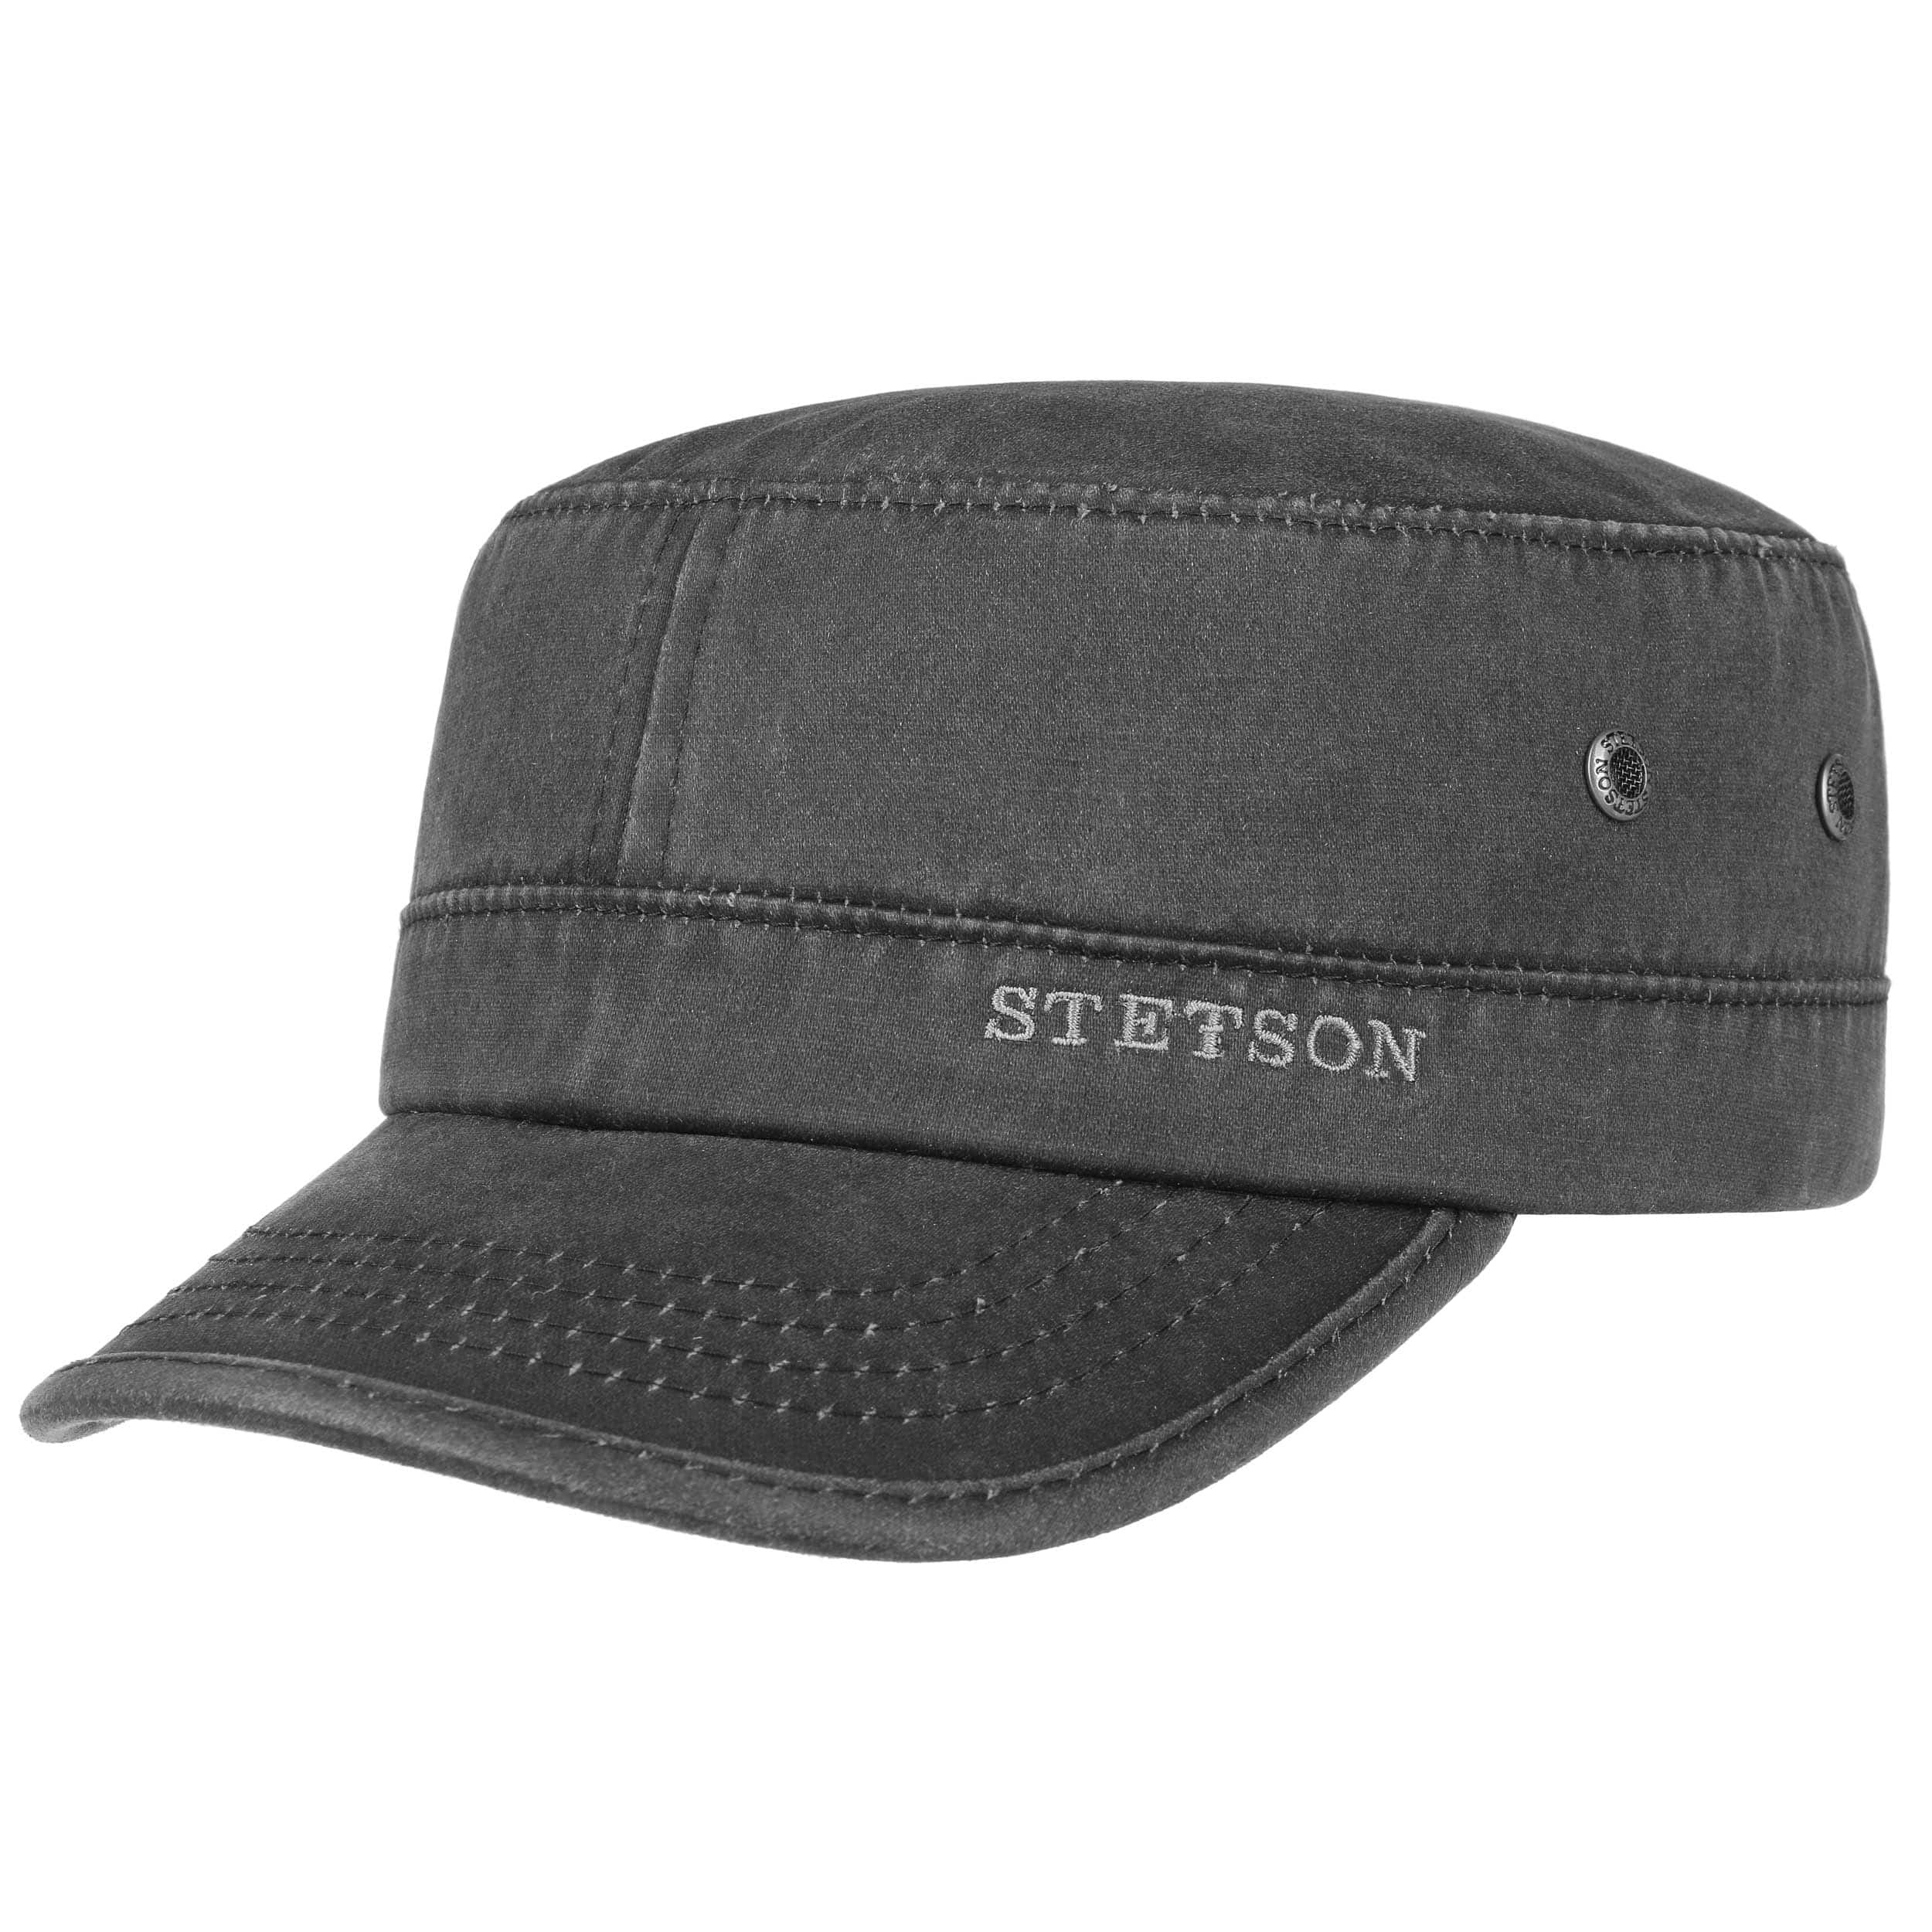 ... Datto Army Cap by Stetson - black 6 a77358efb38